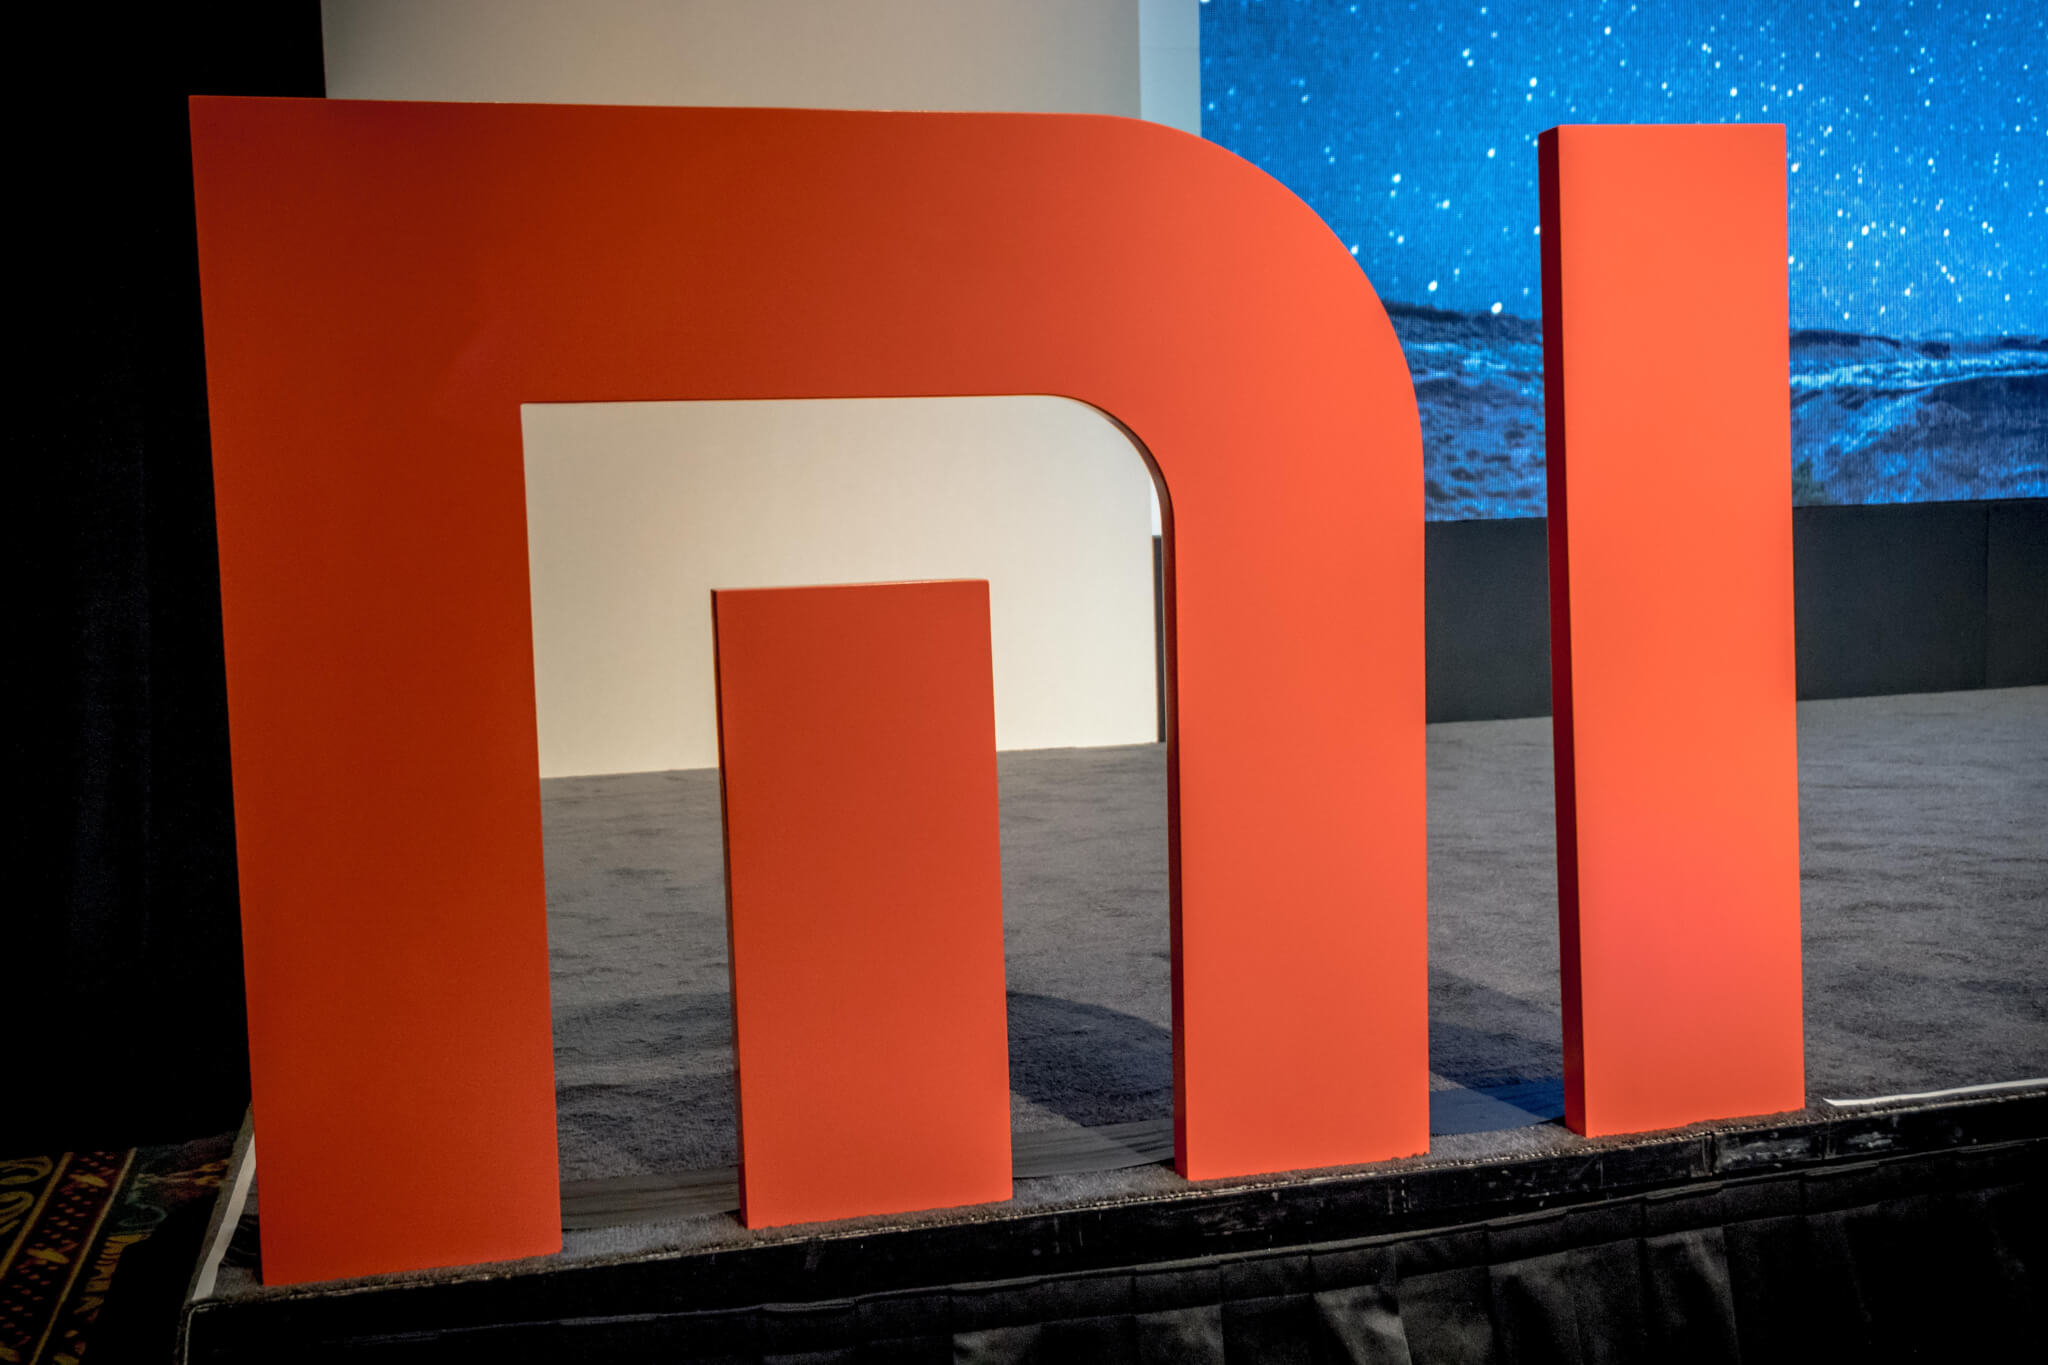 Xiaomi IPO Fails to Raise Anticipated Funds After Low End Pricing